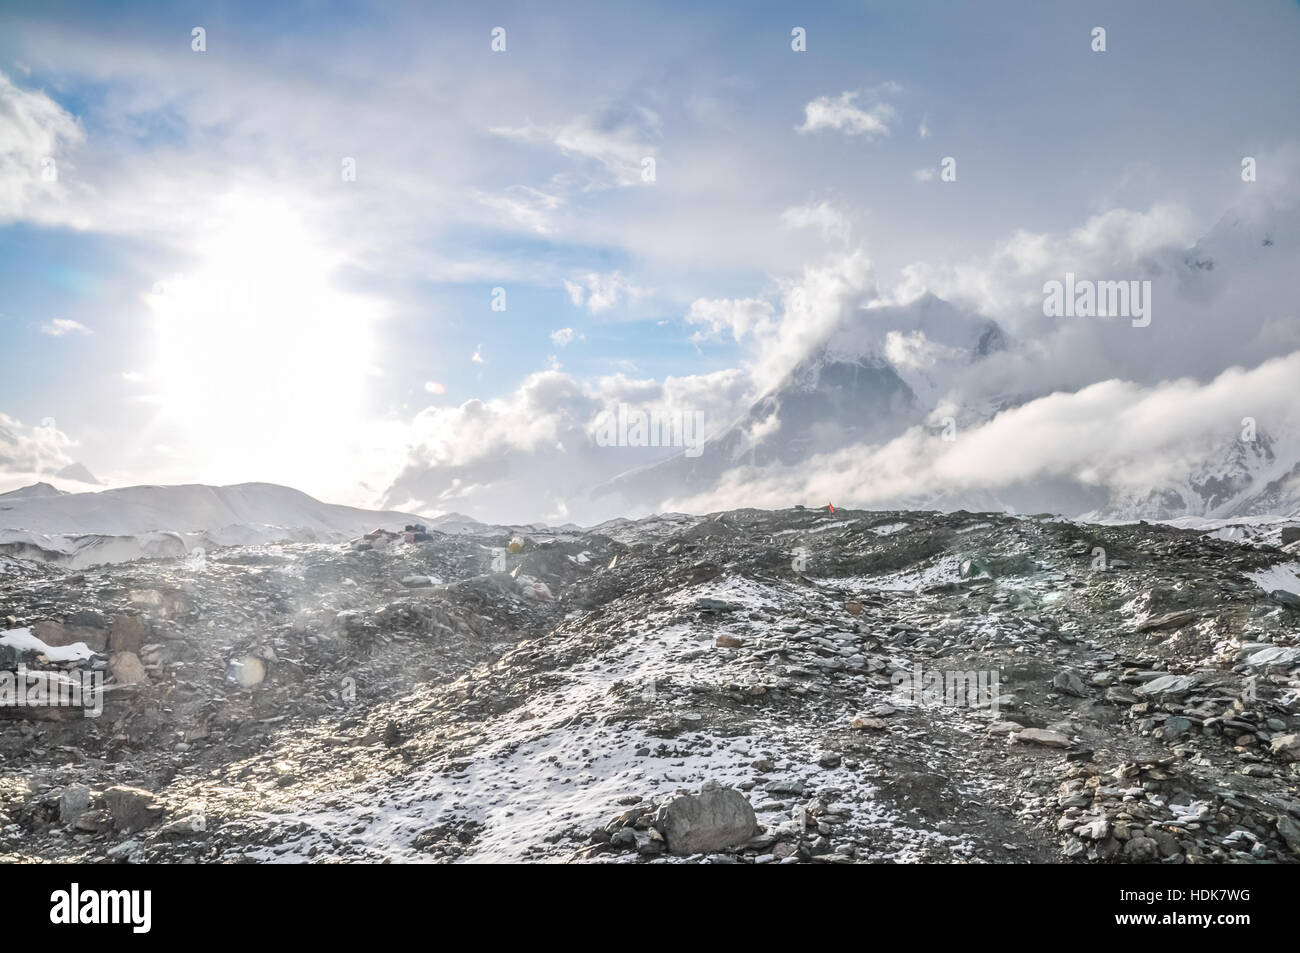 Photo of rocky terrain with fog in distance near South Inylcheck Glaciar in Kyrgystan. - Stock Image